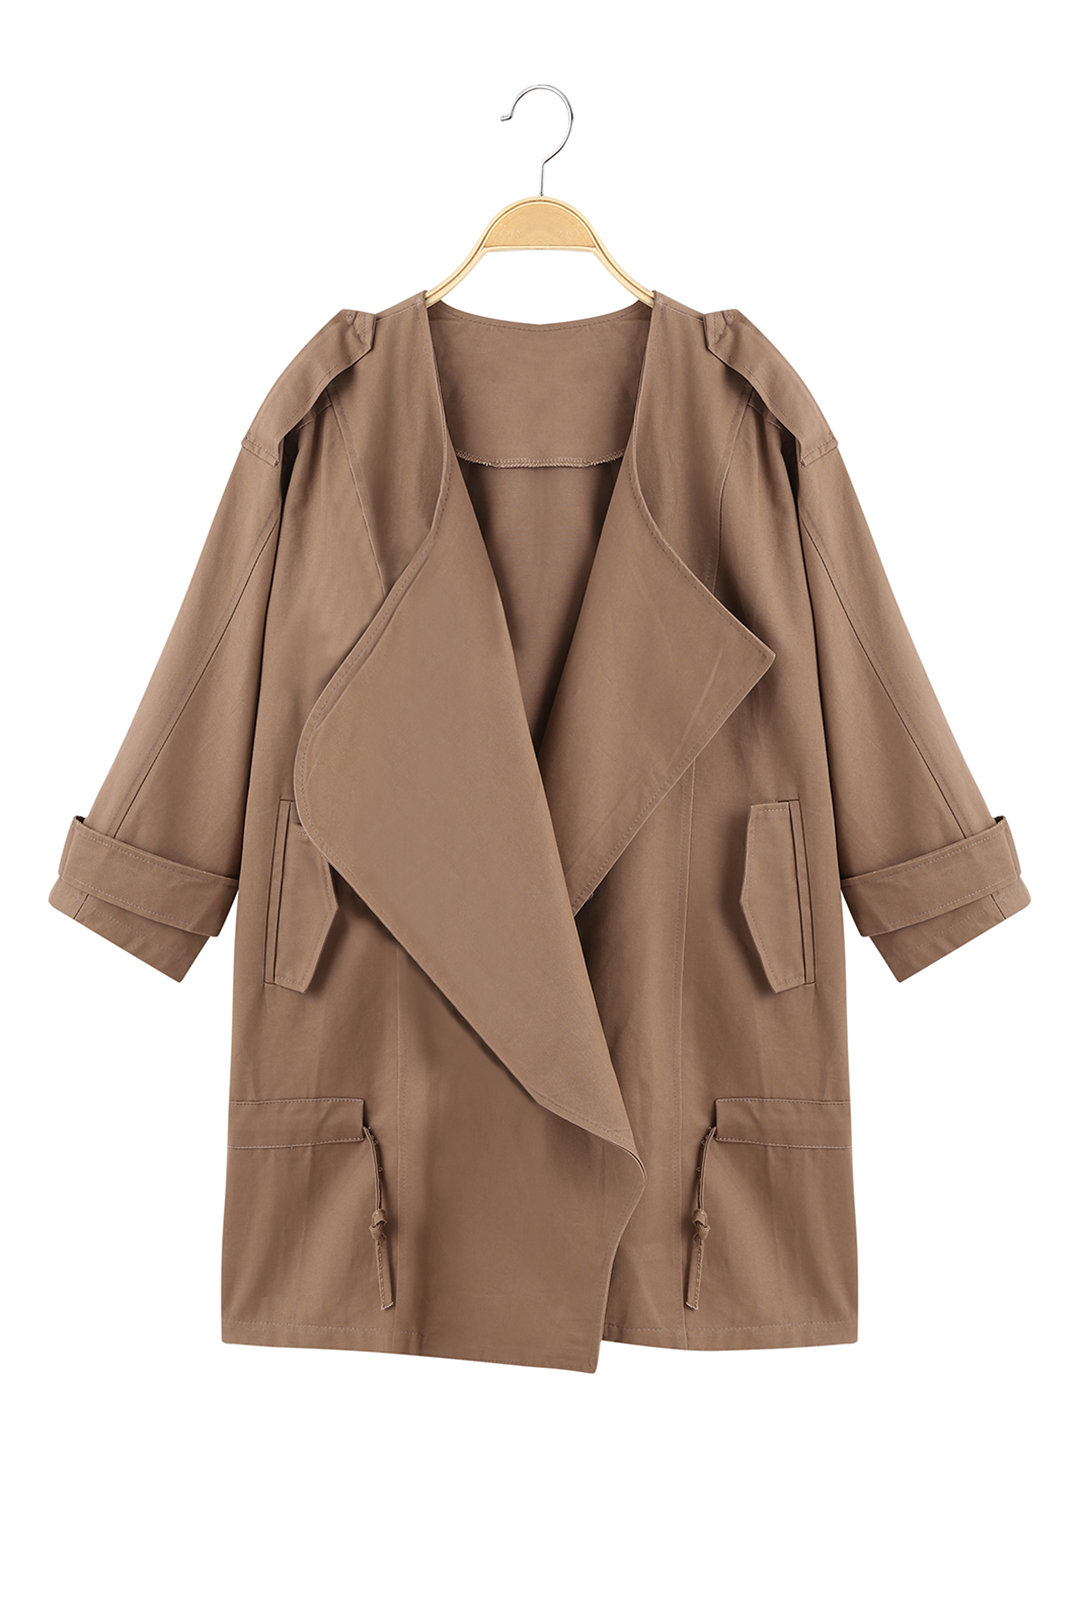 Classics Collection Solid Khaki 3/4 Sleeve Waist Tie Trench Coat